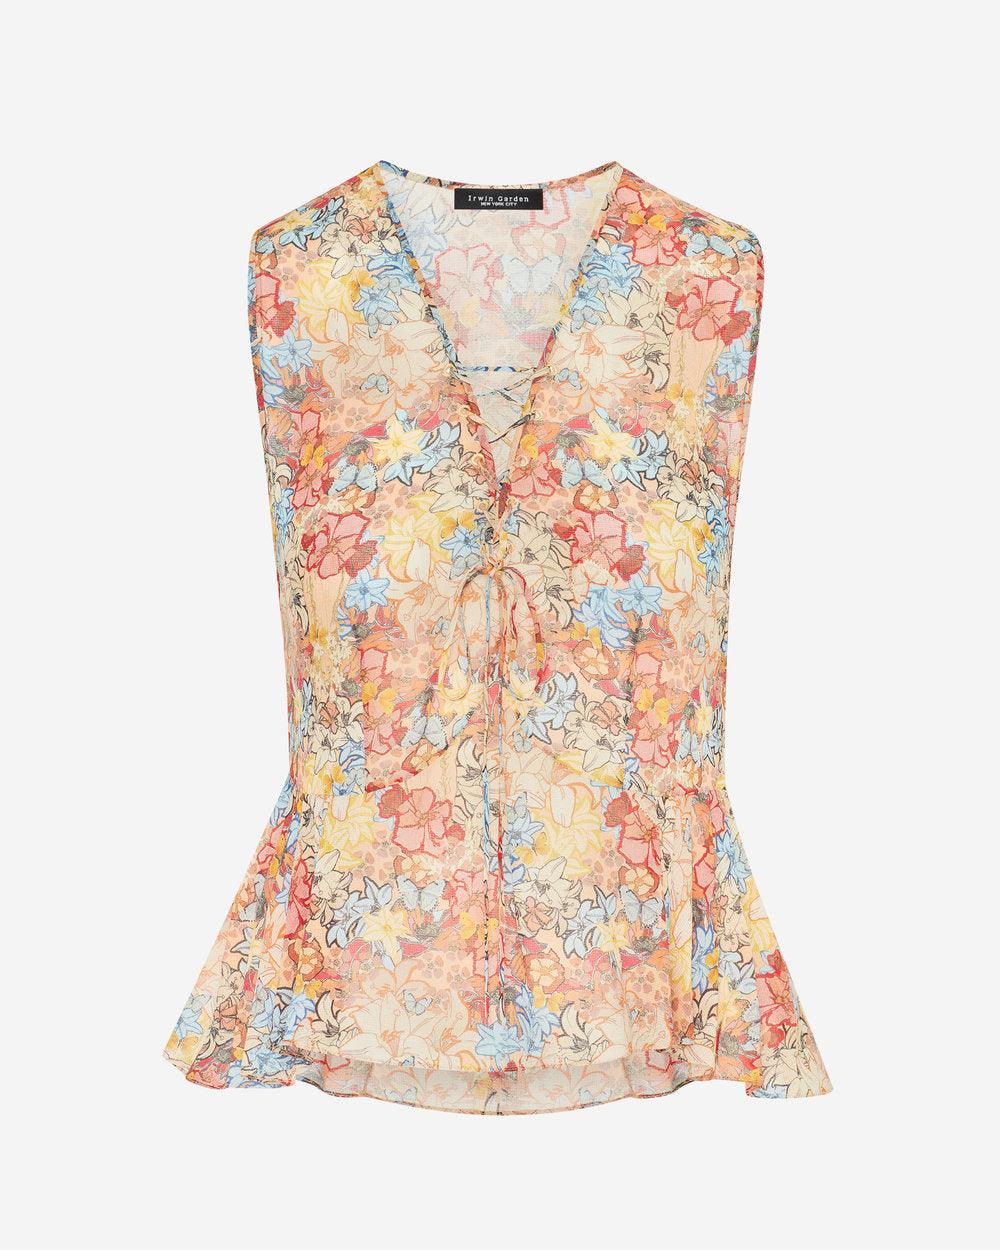 Penney Blouse - Psychedelic Floral